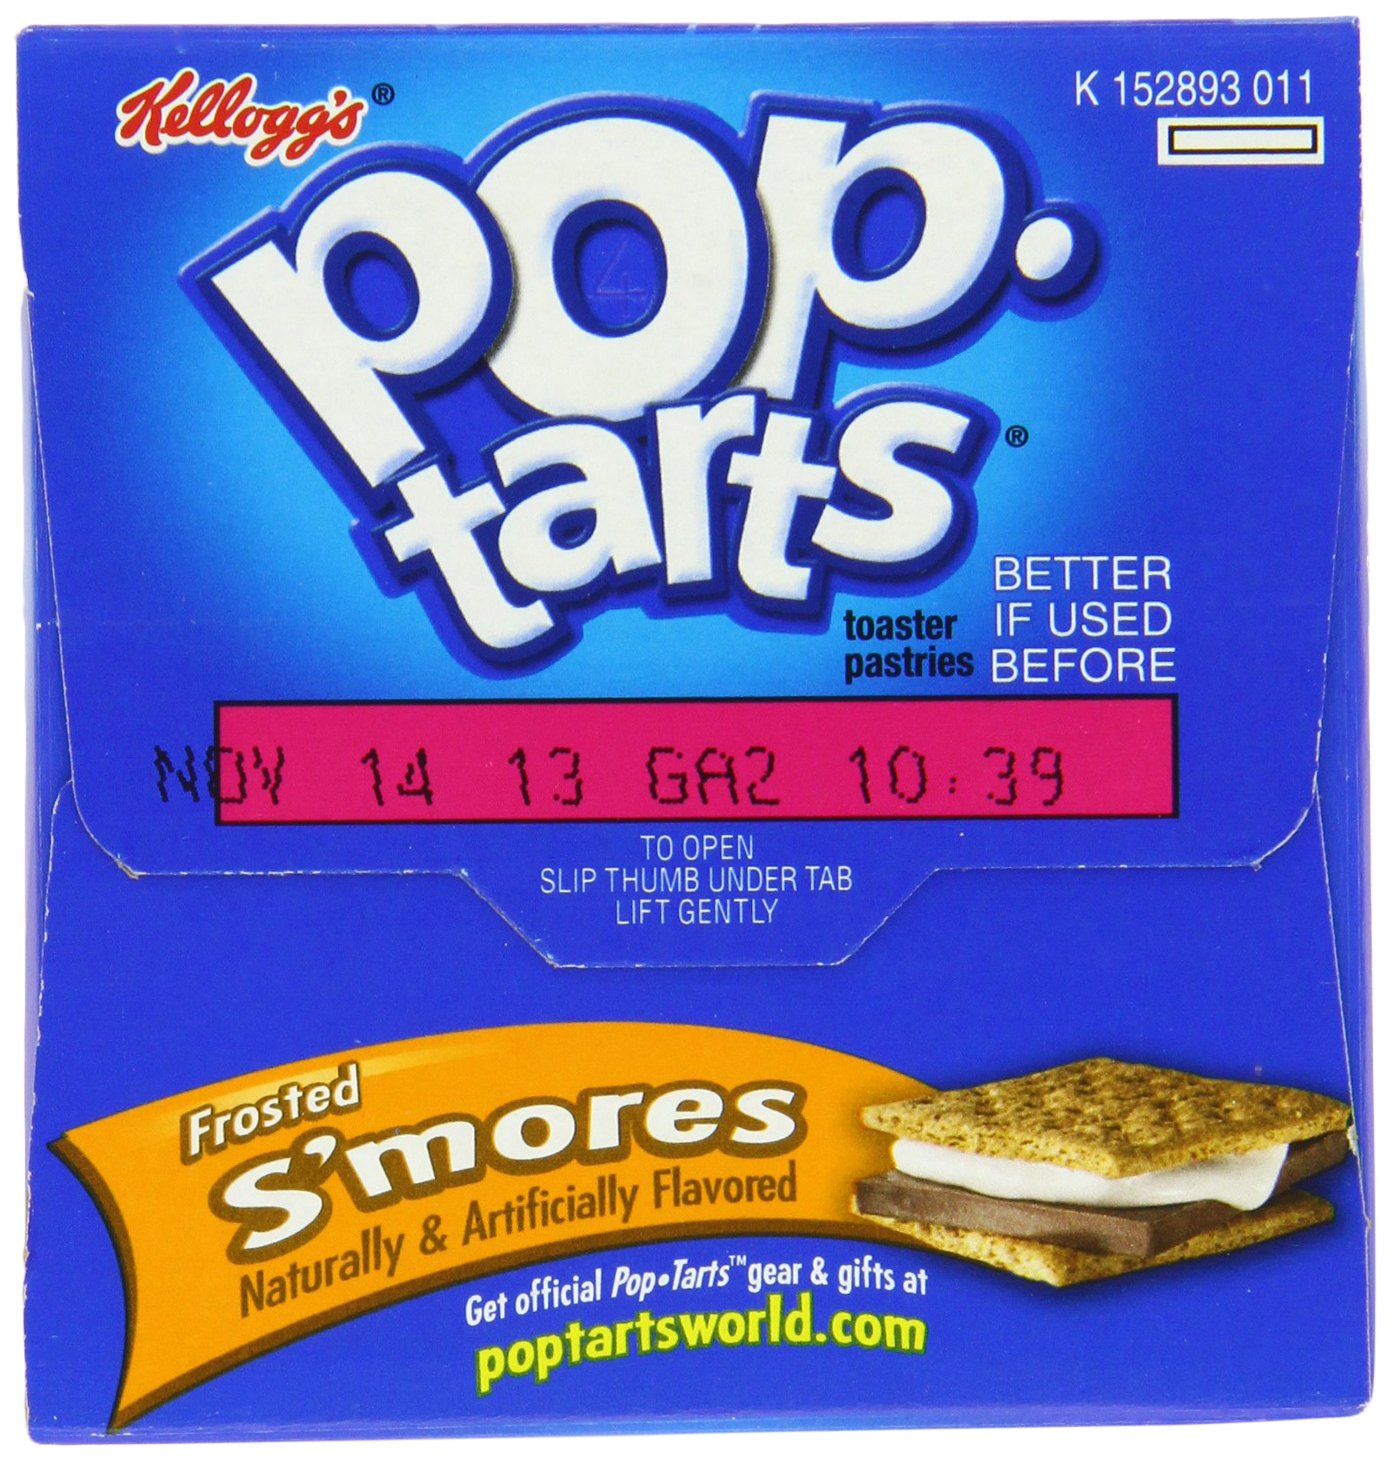 Kellogg's, Pop-Tarts, Frosted S'mores, 8 Count, 14.7oz Box (Pack of 6)